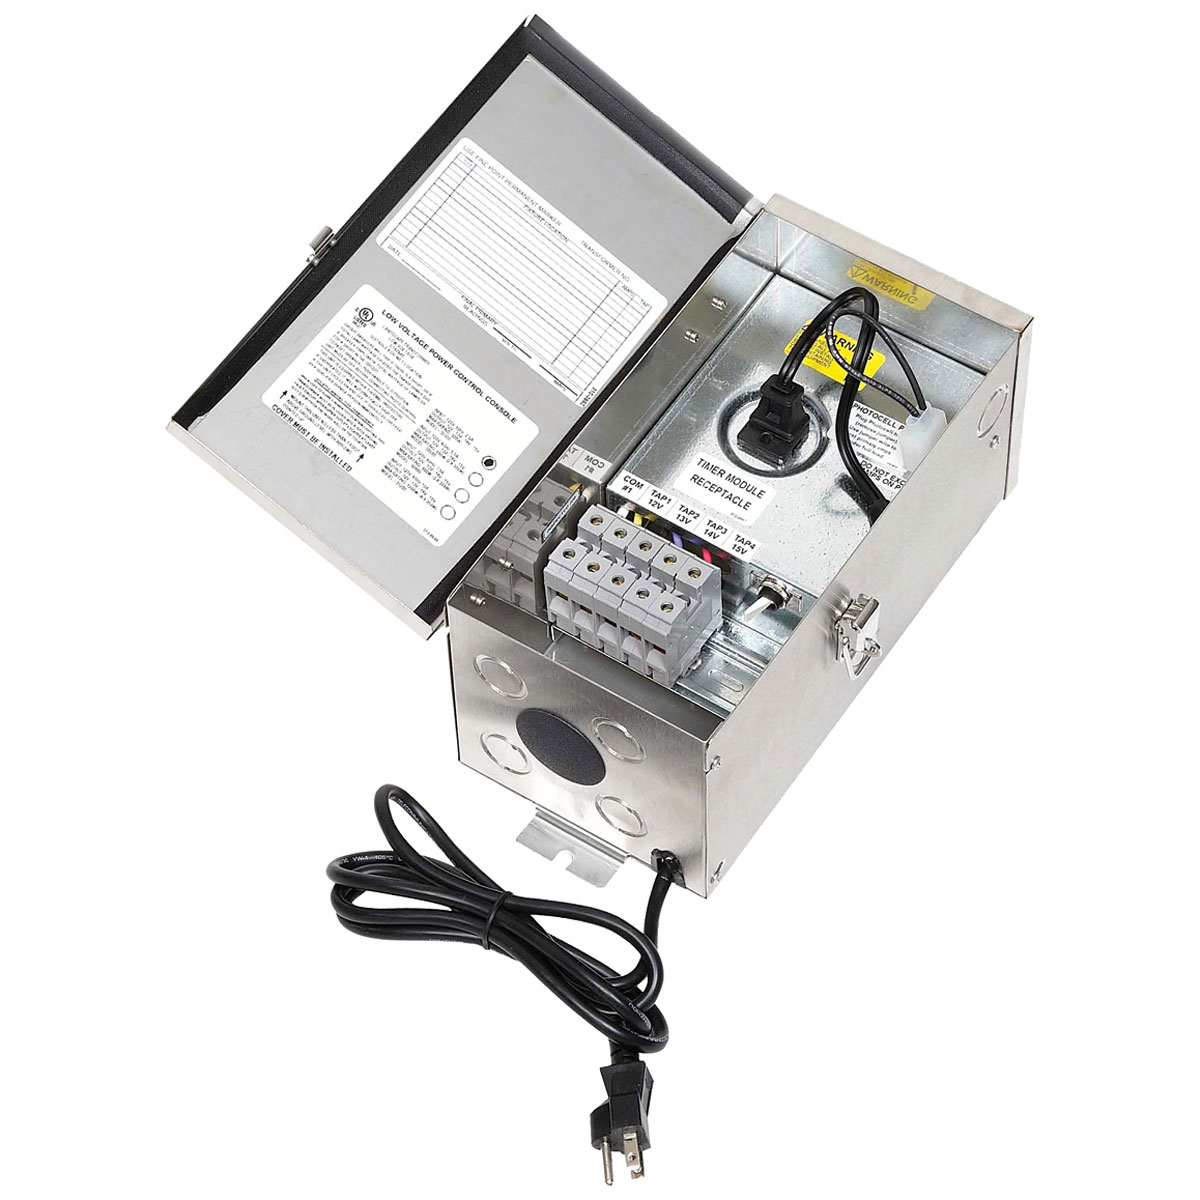 300 Watt 12-15 Volt Multitap Outdoor Transformer by Hadco by Signify |  TC354-15